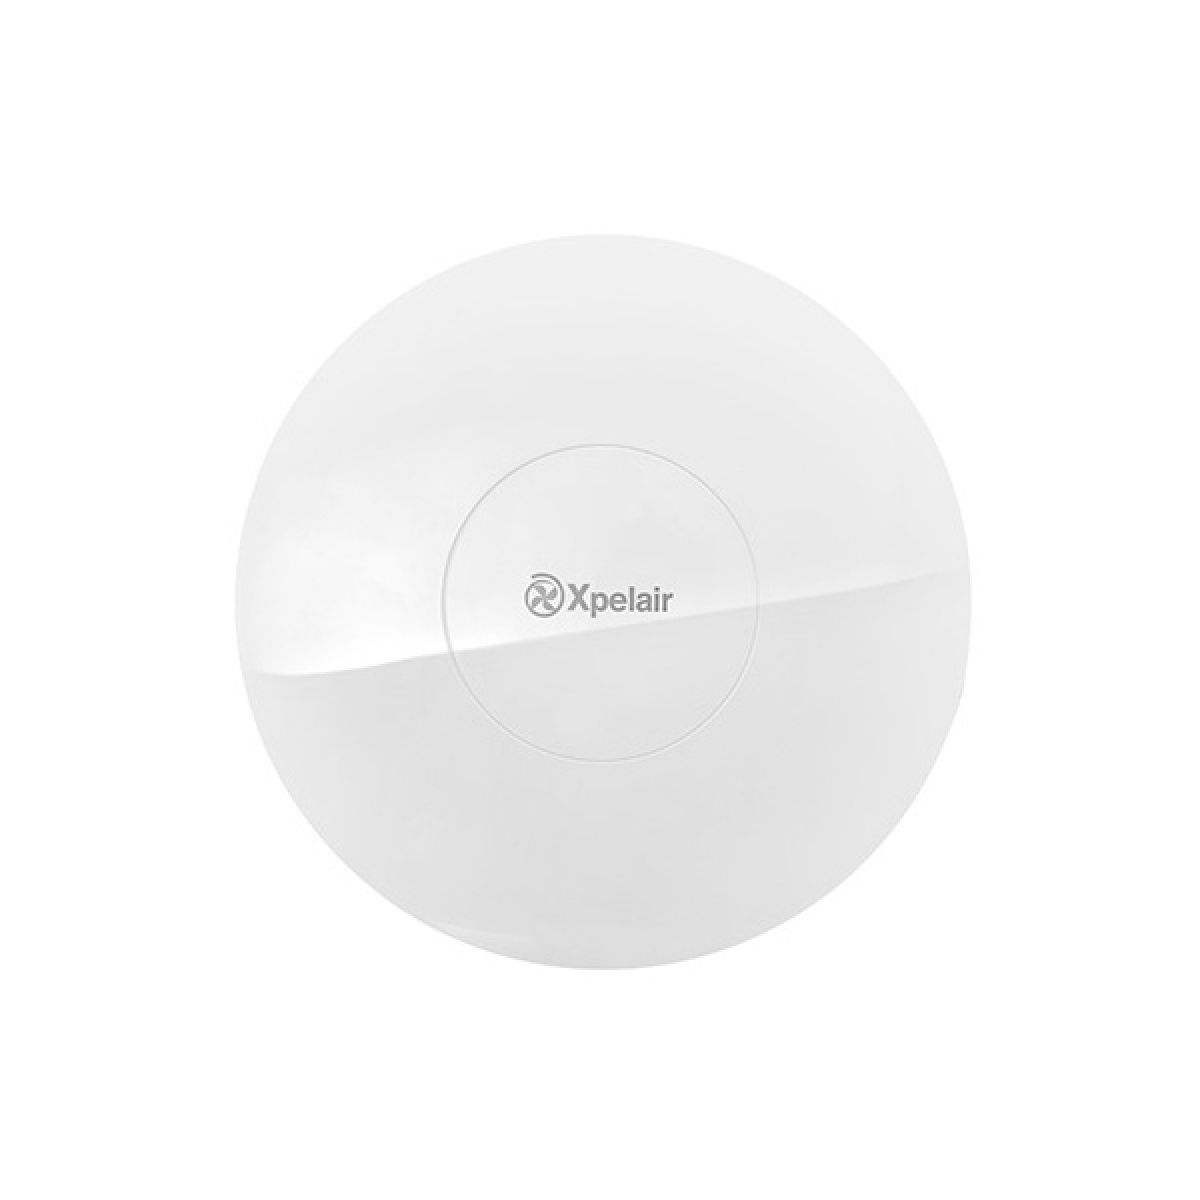 Xpelair Simply Silent Contour Round Bathroom Fan with Humidistat 100mm - Front